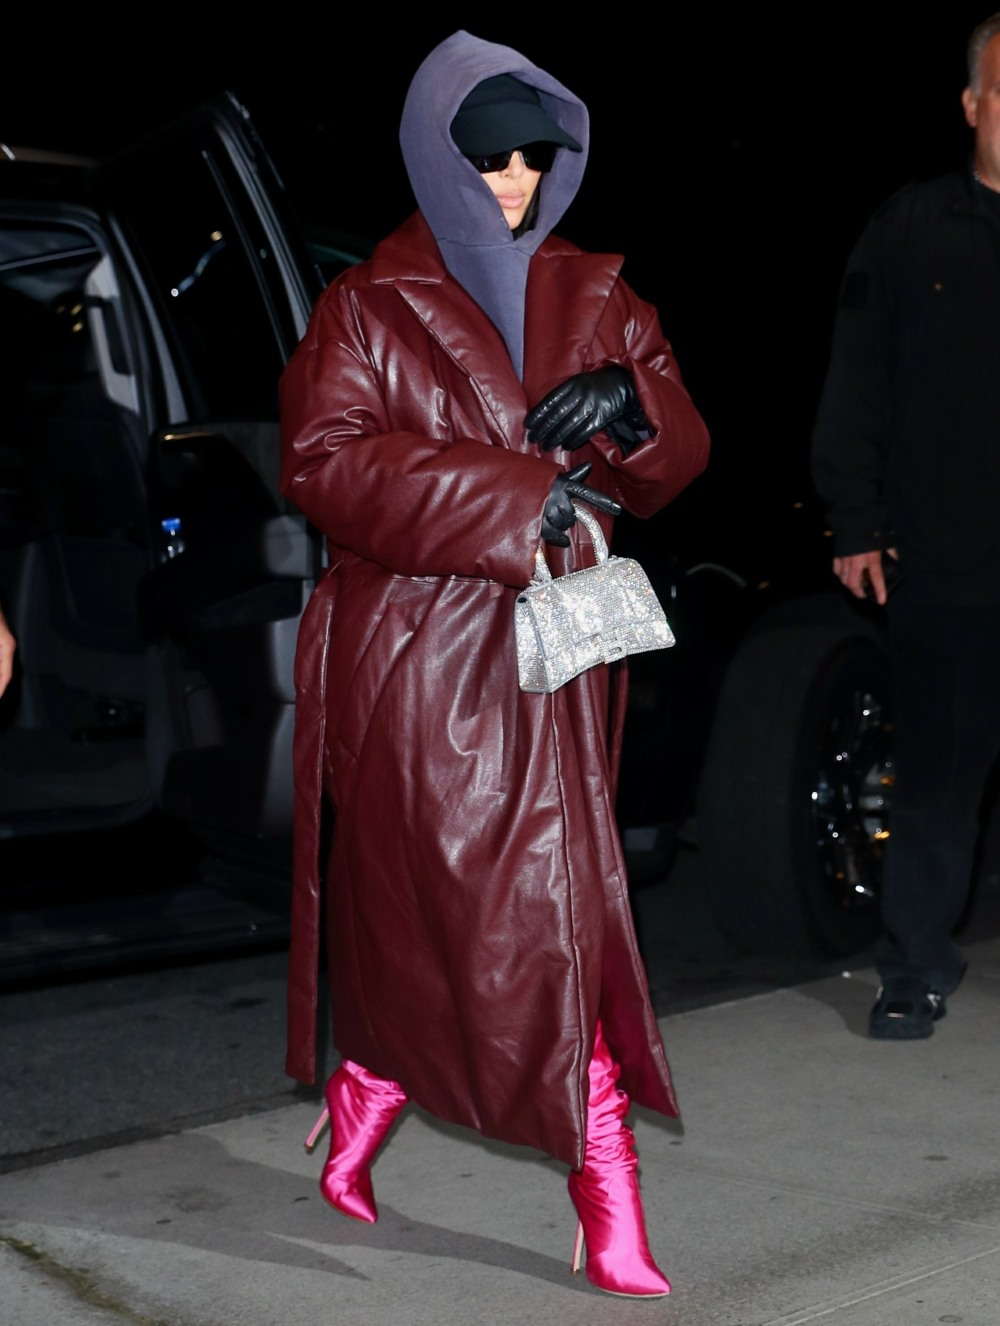 Kim Kardashian switches up her look with a leather coat and hoodie after SNL rehearsals in NYC